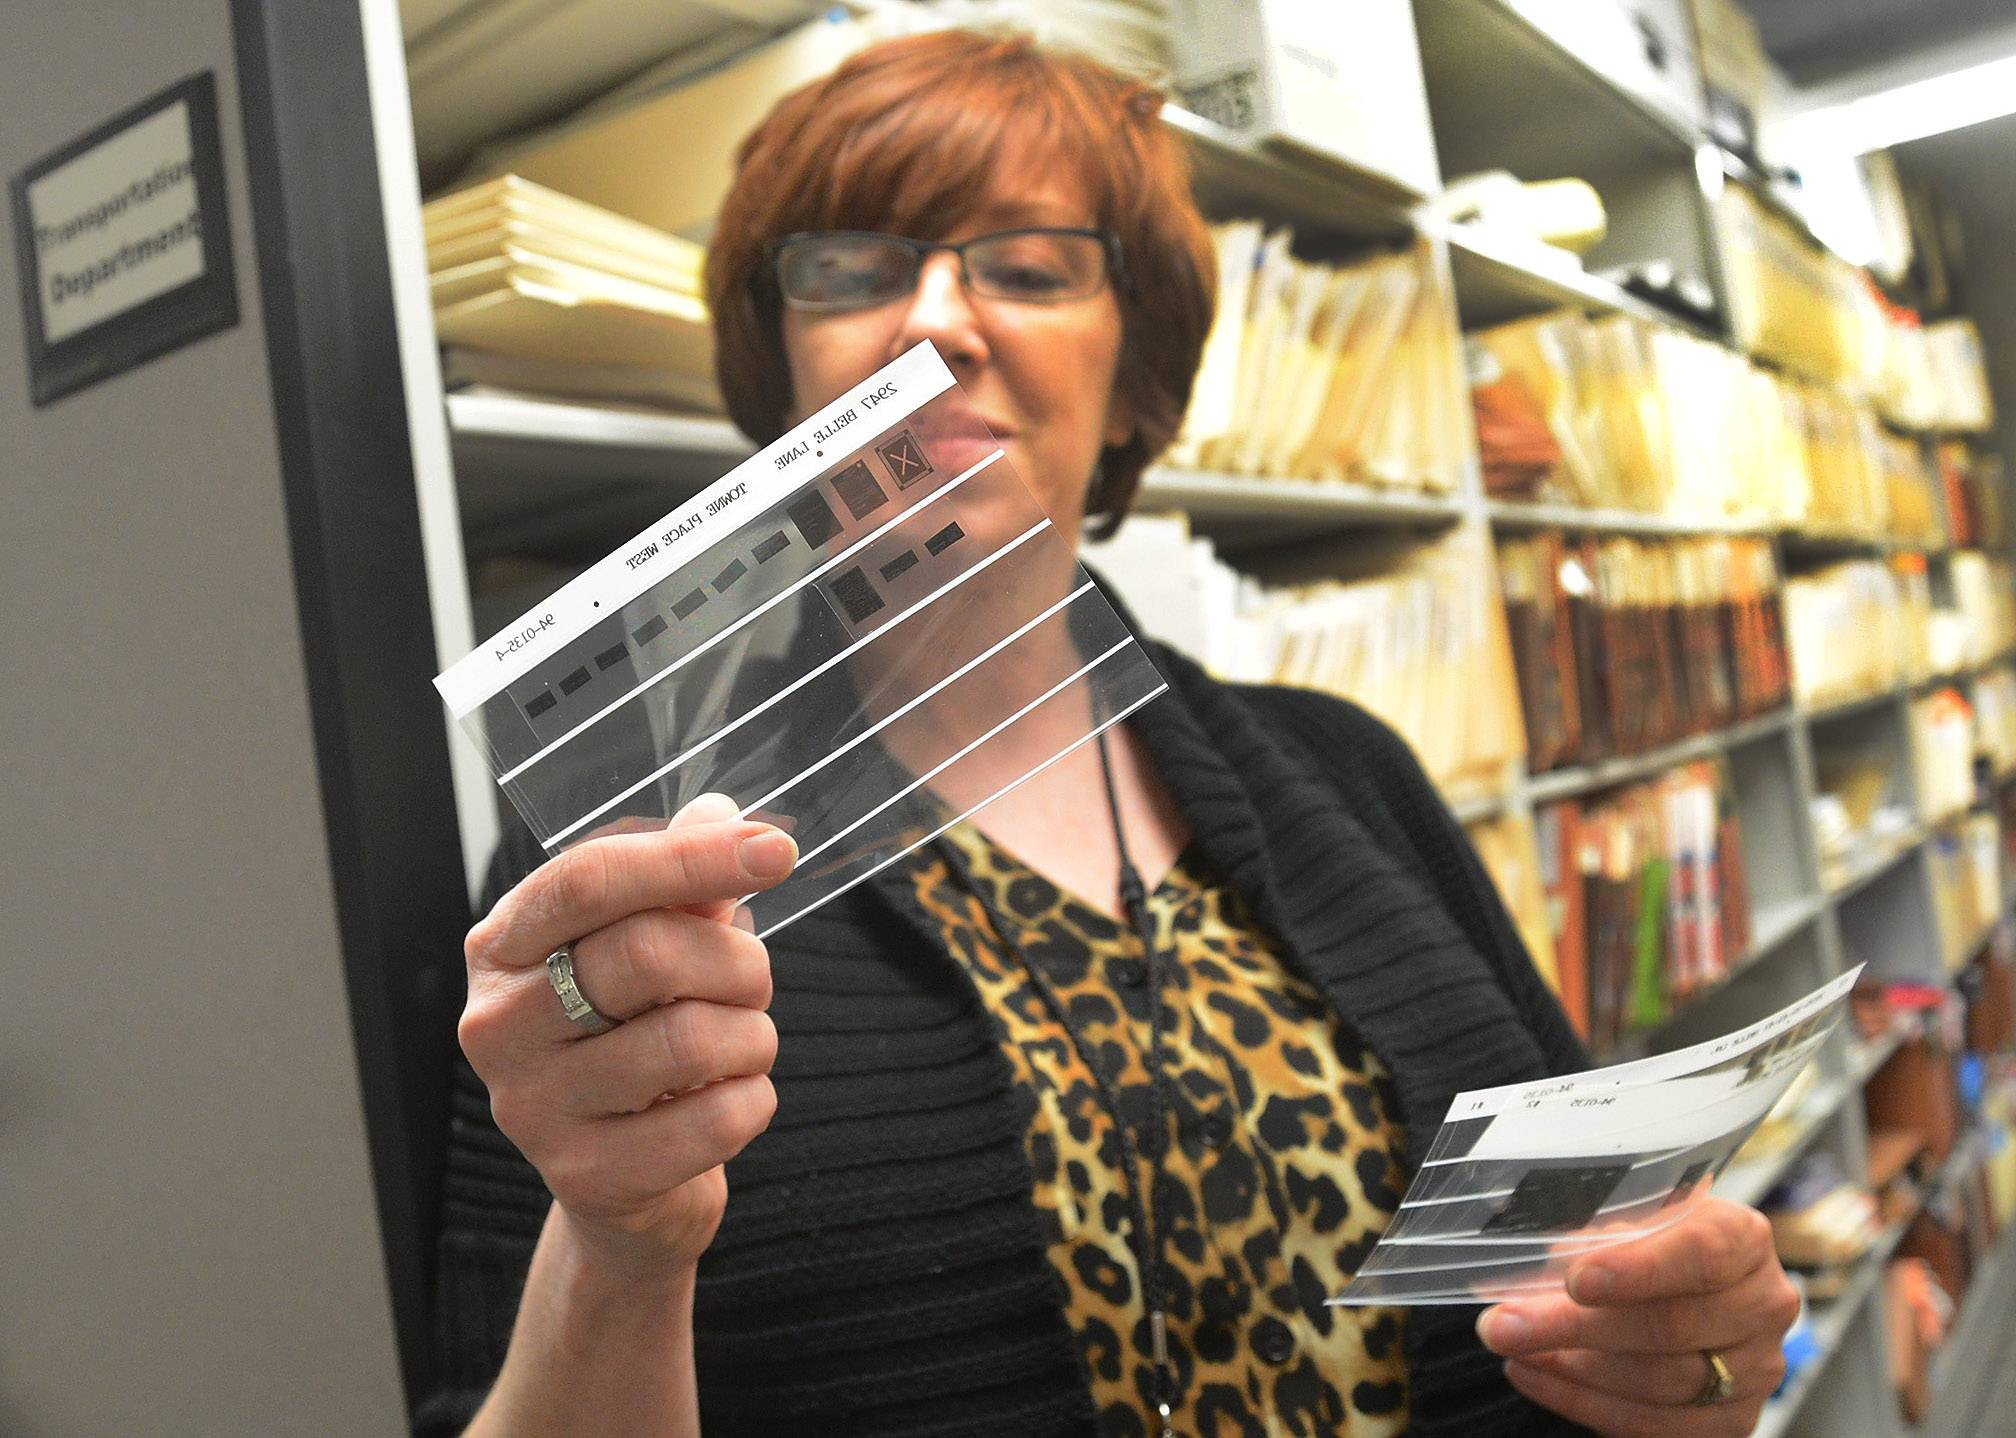 Jane Lentino, Schaumburg permit control clerk, tracks down information for a FOIA request on microfiche.